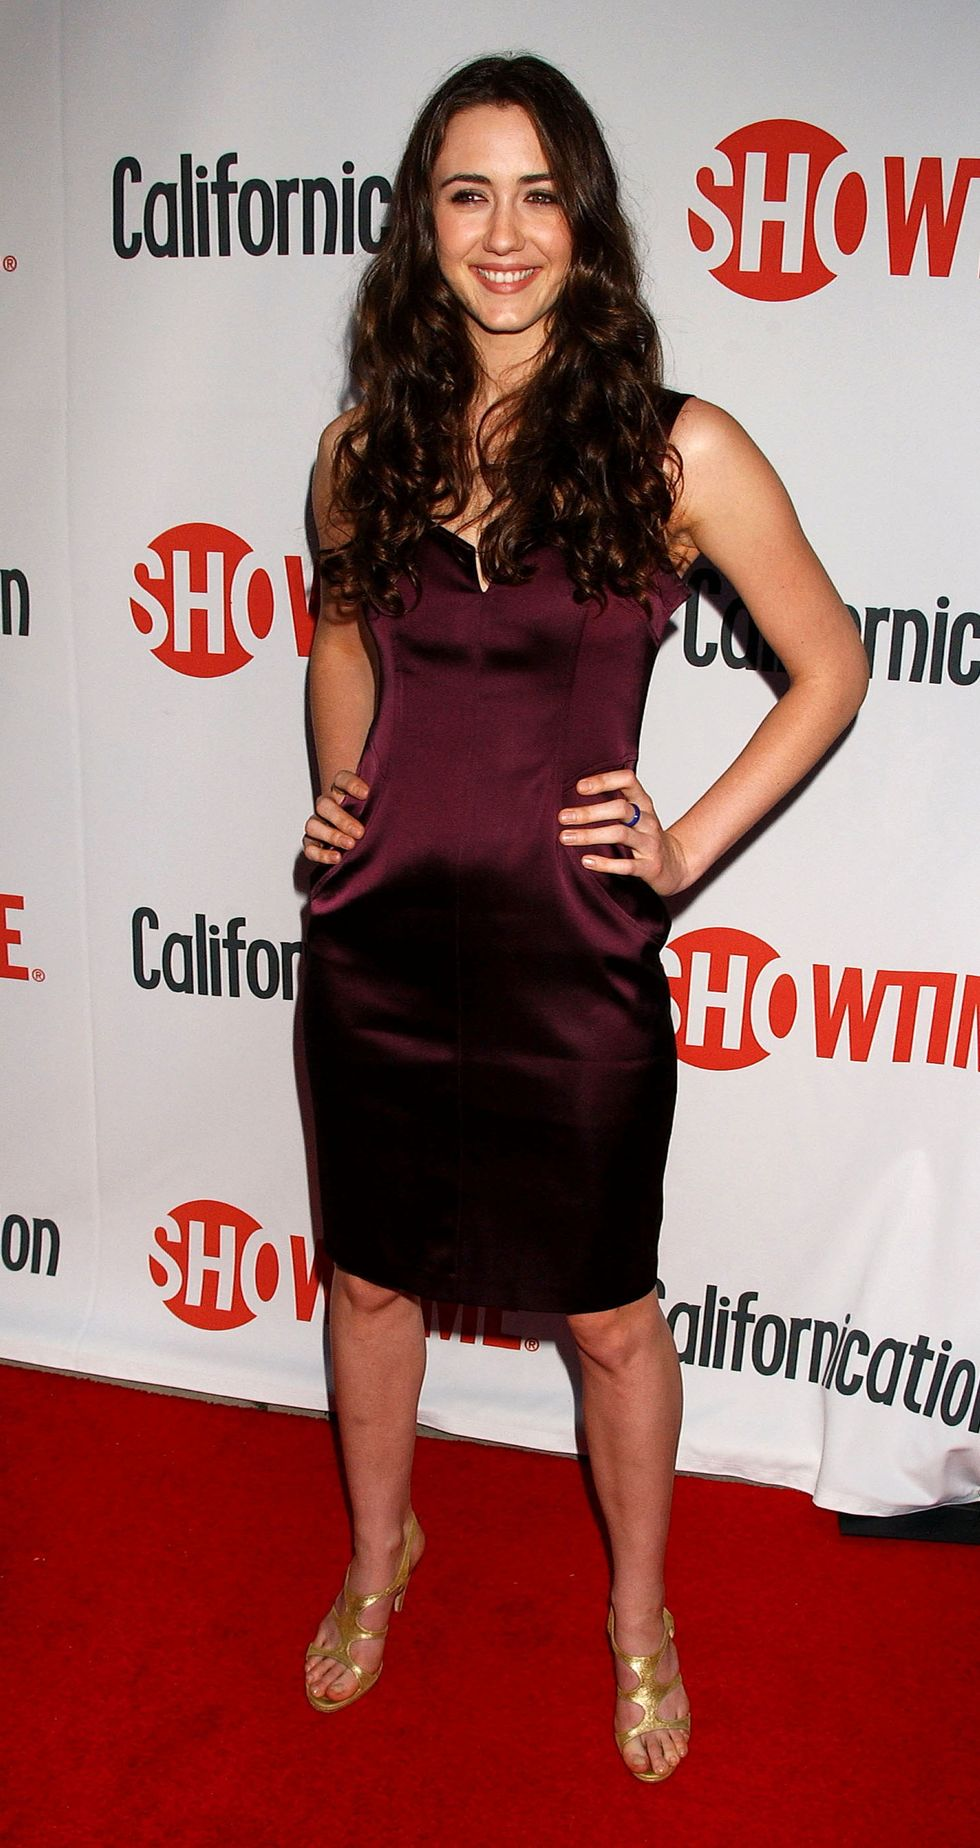 madeline-zima-californication-dvd-release-party-01